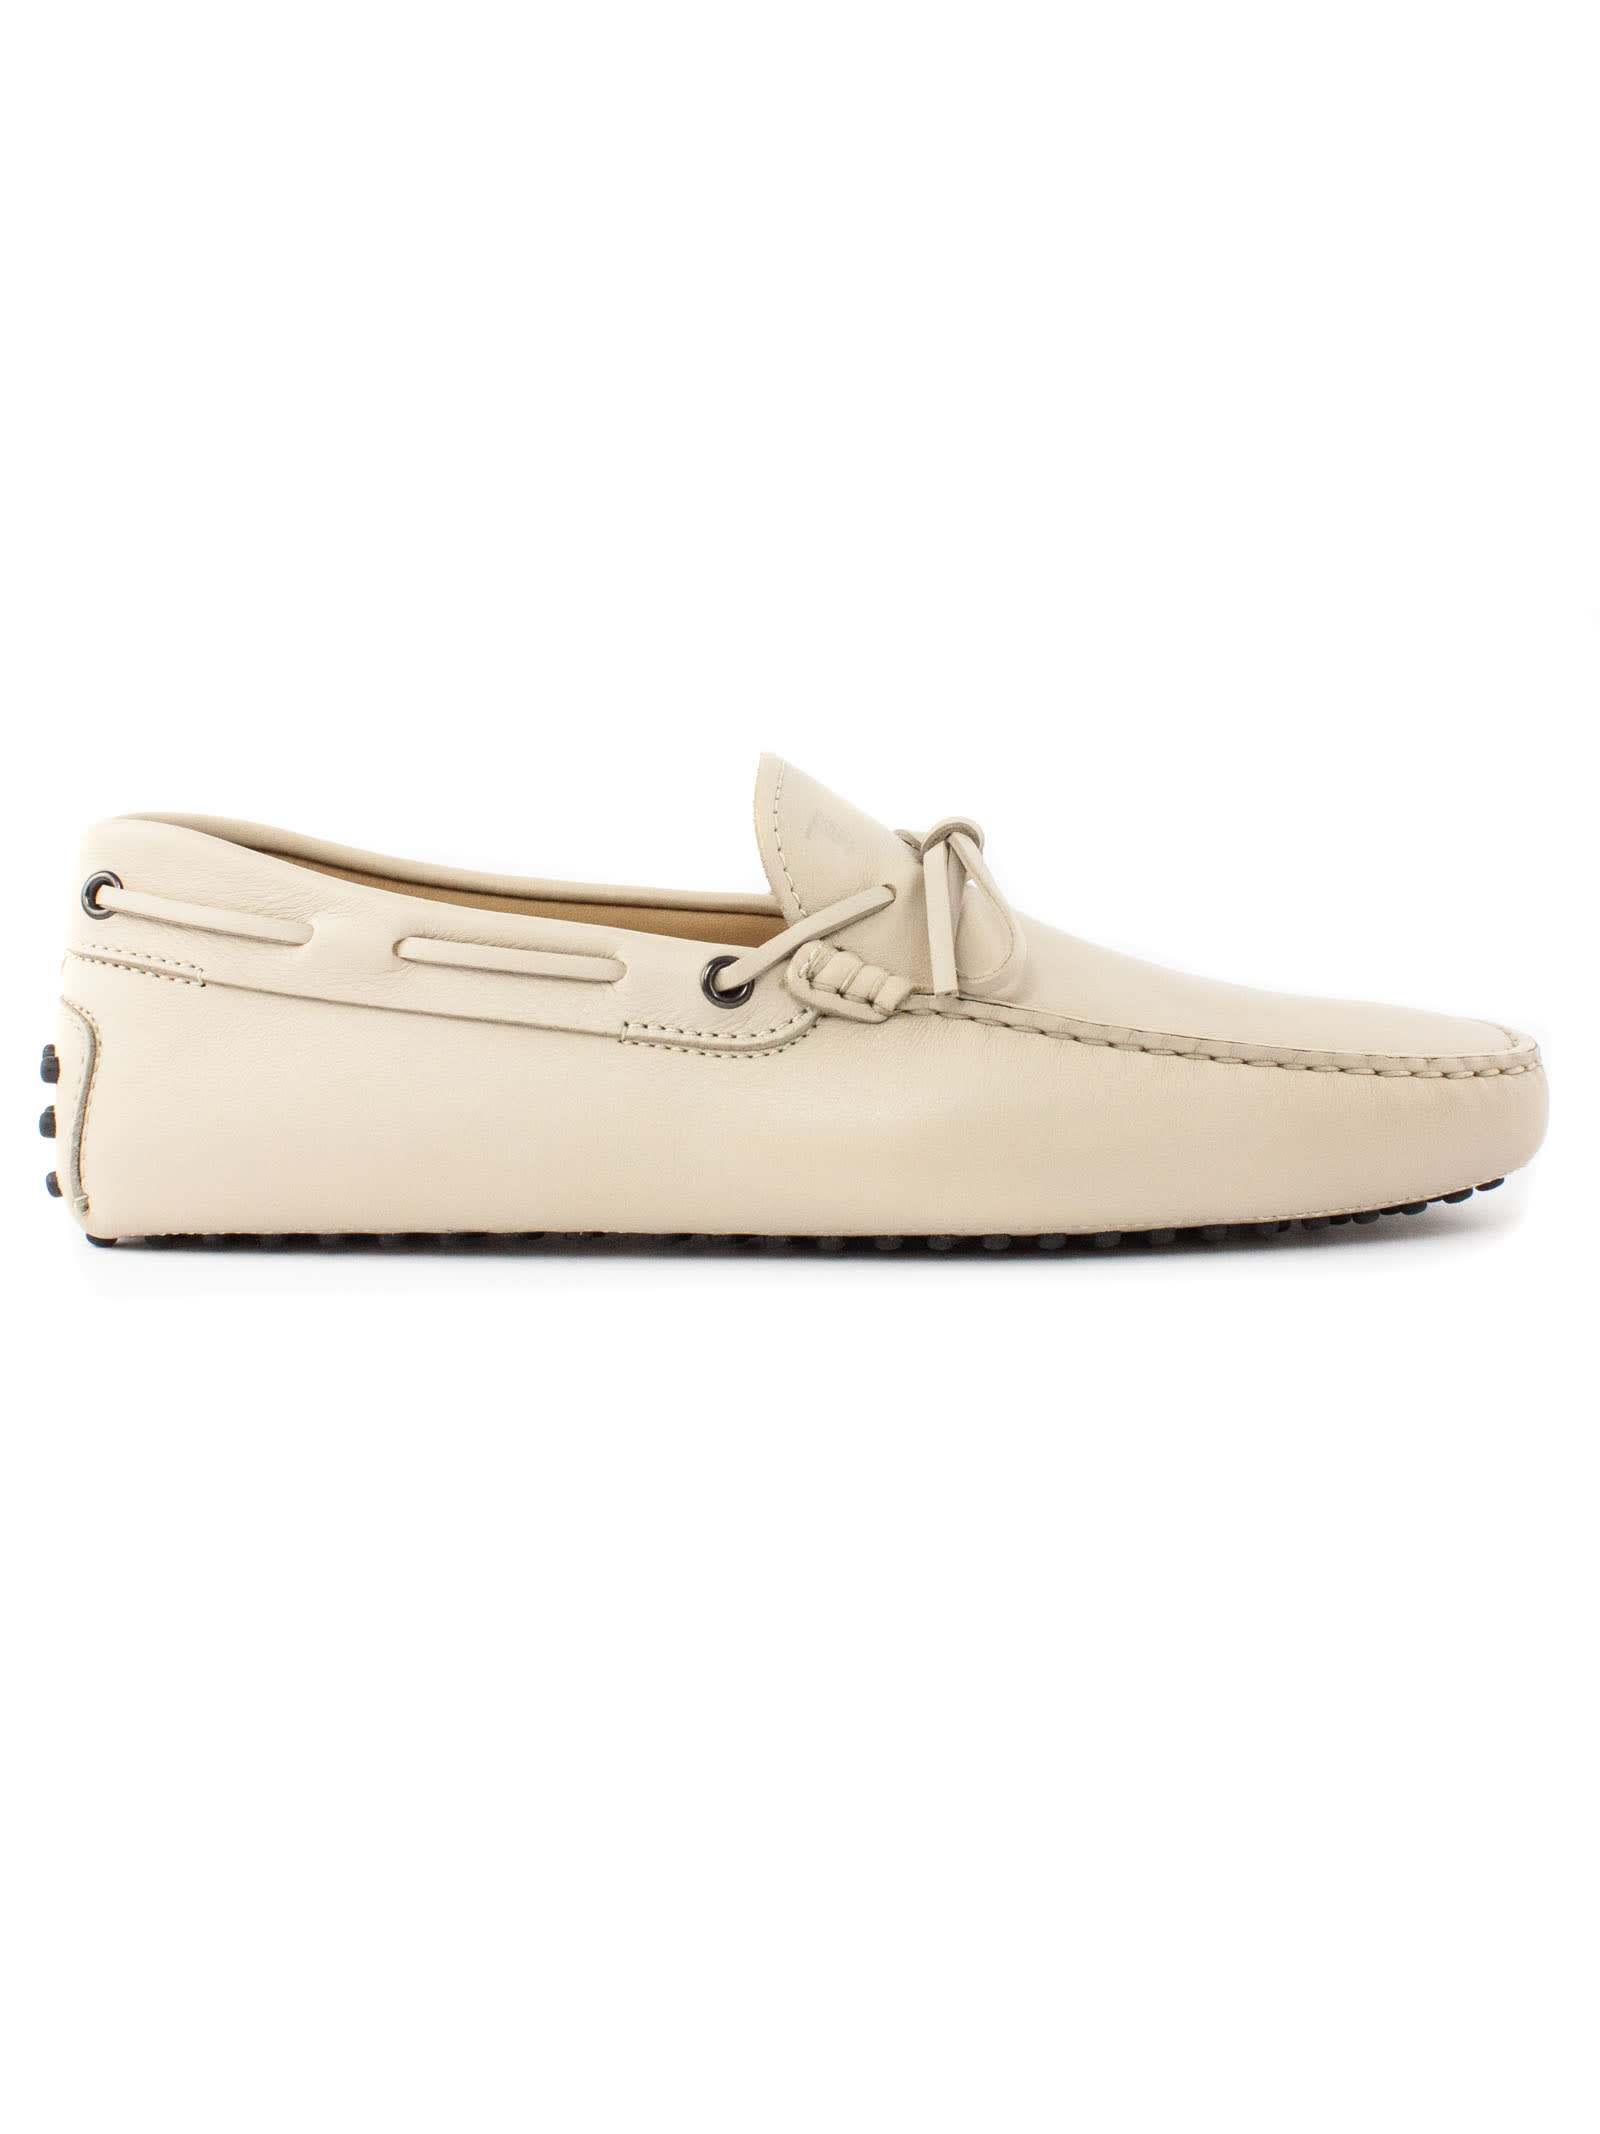 Tods Beige Gommino Driving Shoes